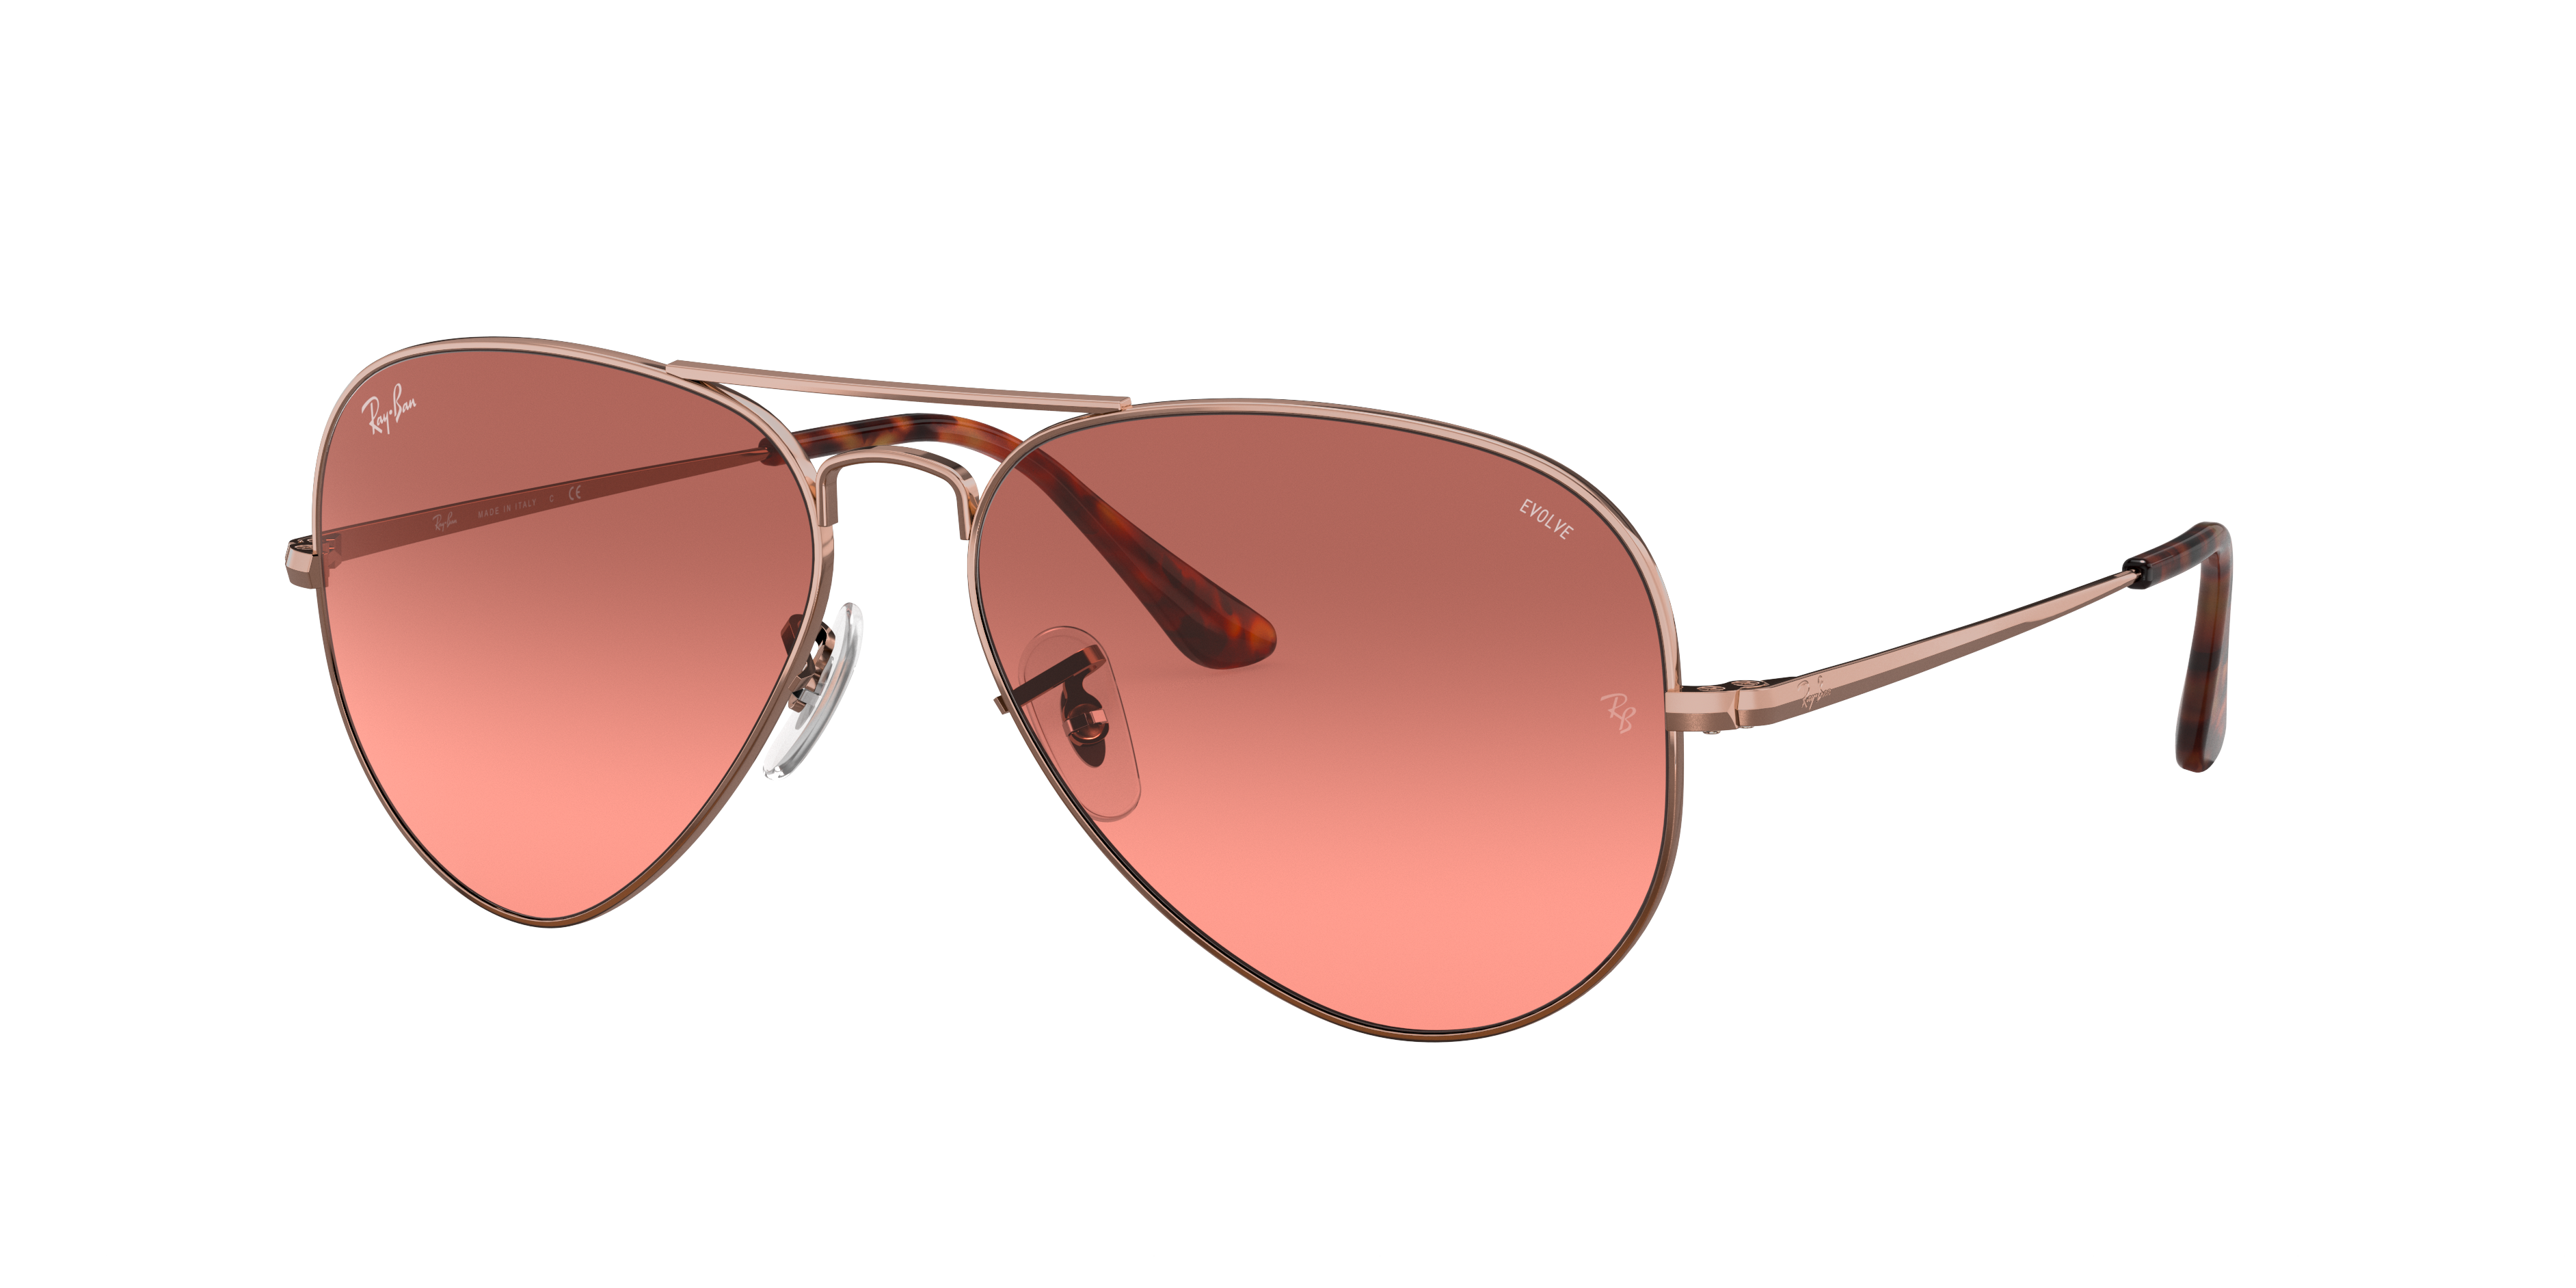 Ray-Ban Rb3689 Washed Evolve Bronze-Copper, Red Lenses - RB3689